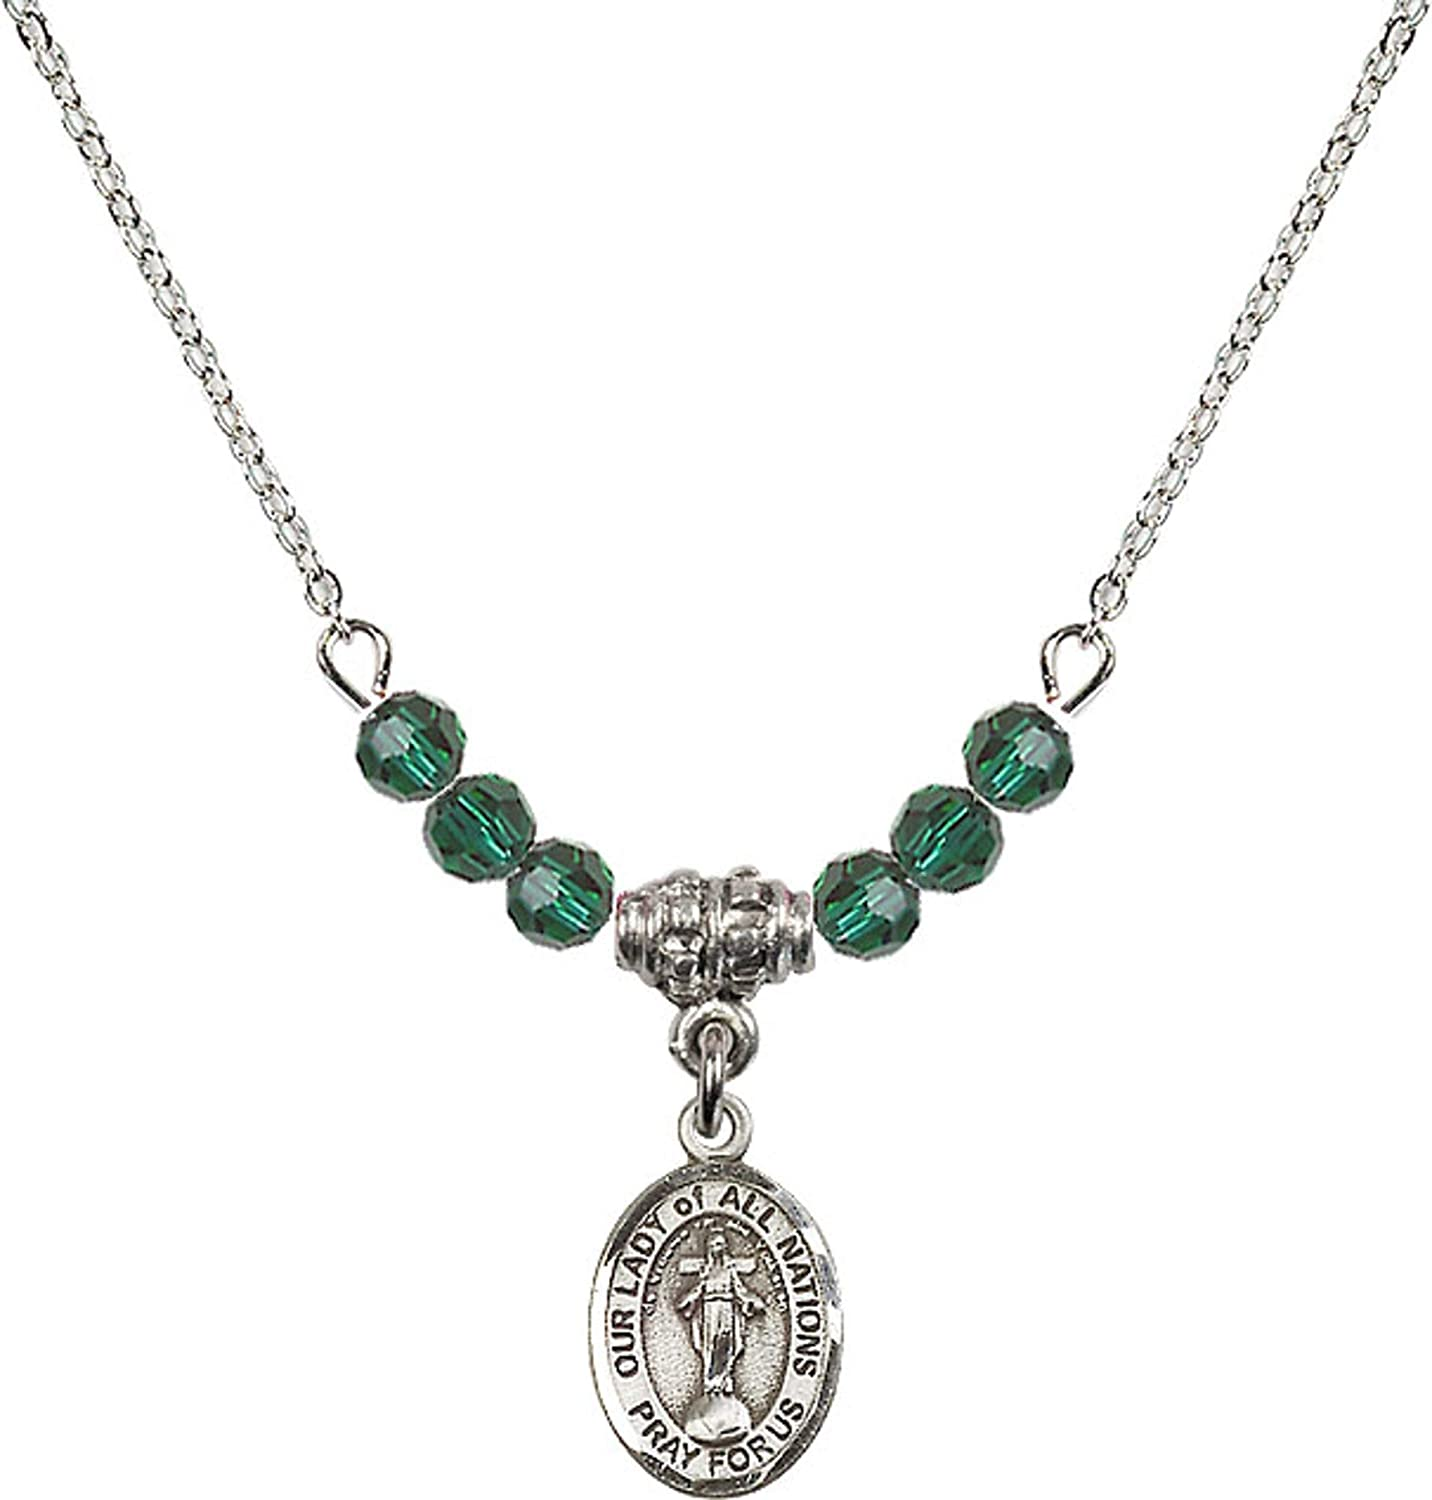 Bonyak Jewelry 18 Inch Rhodium Plated Necklace w// 4mm Green May Birth Month Stone Beads and Our Lady of All Nations Charm